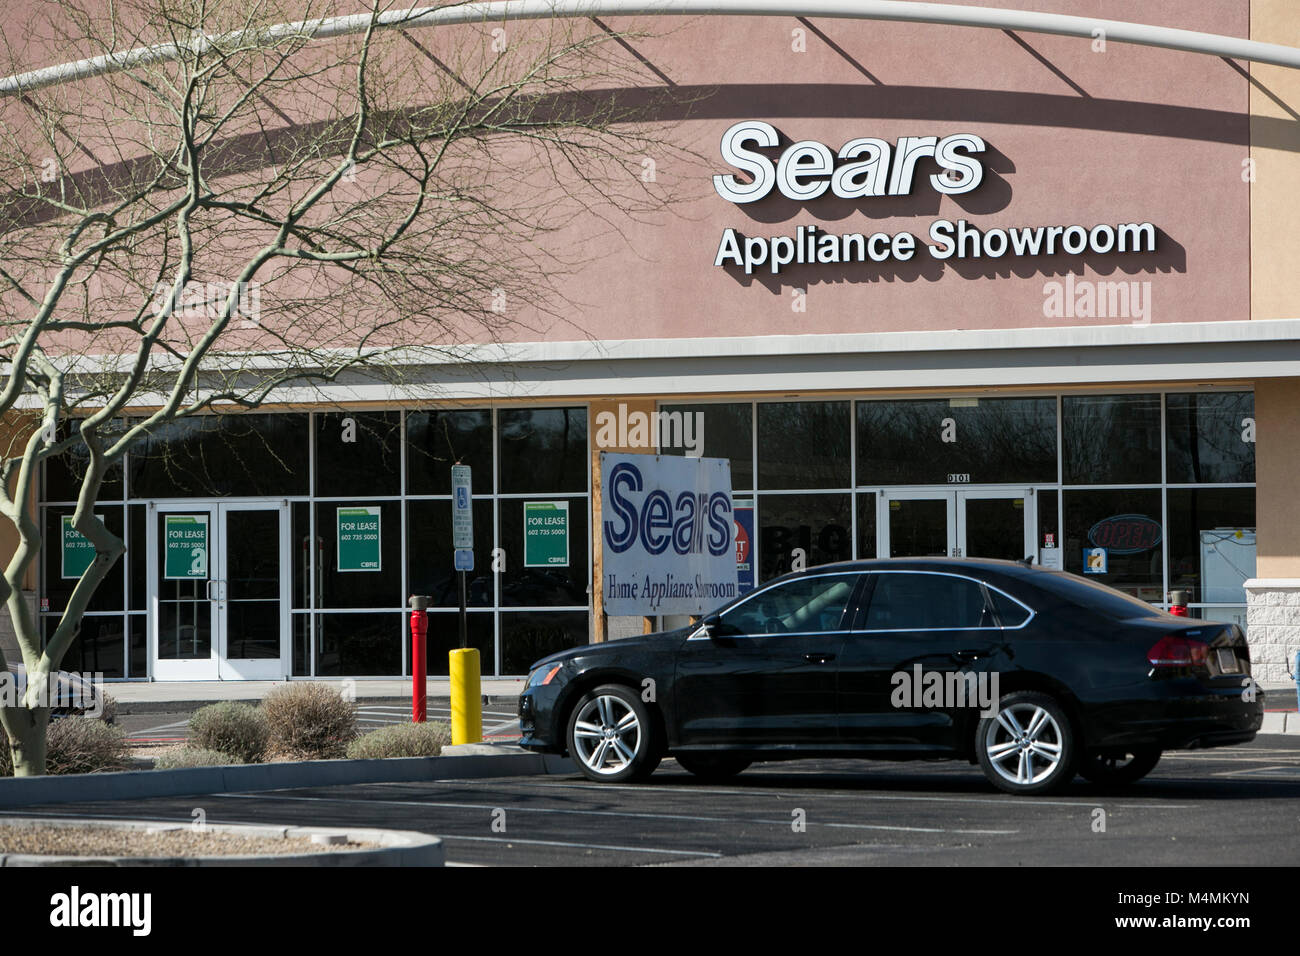 A logo sign outside of a Sears Appliance Showroom in Scottsdale, Arizona, on February 4, 2018. - Stock Image